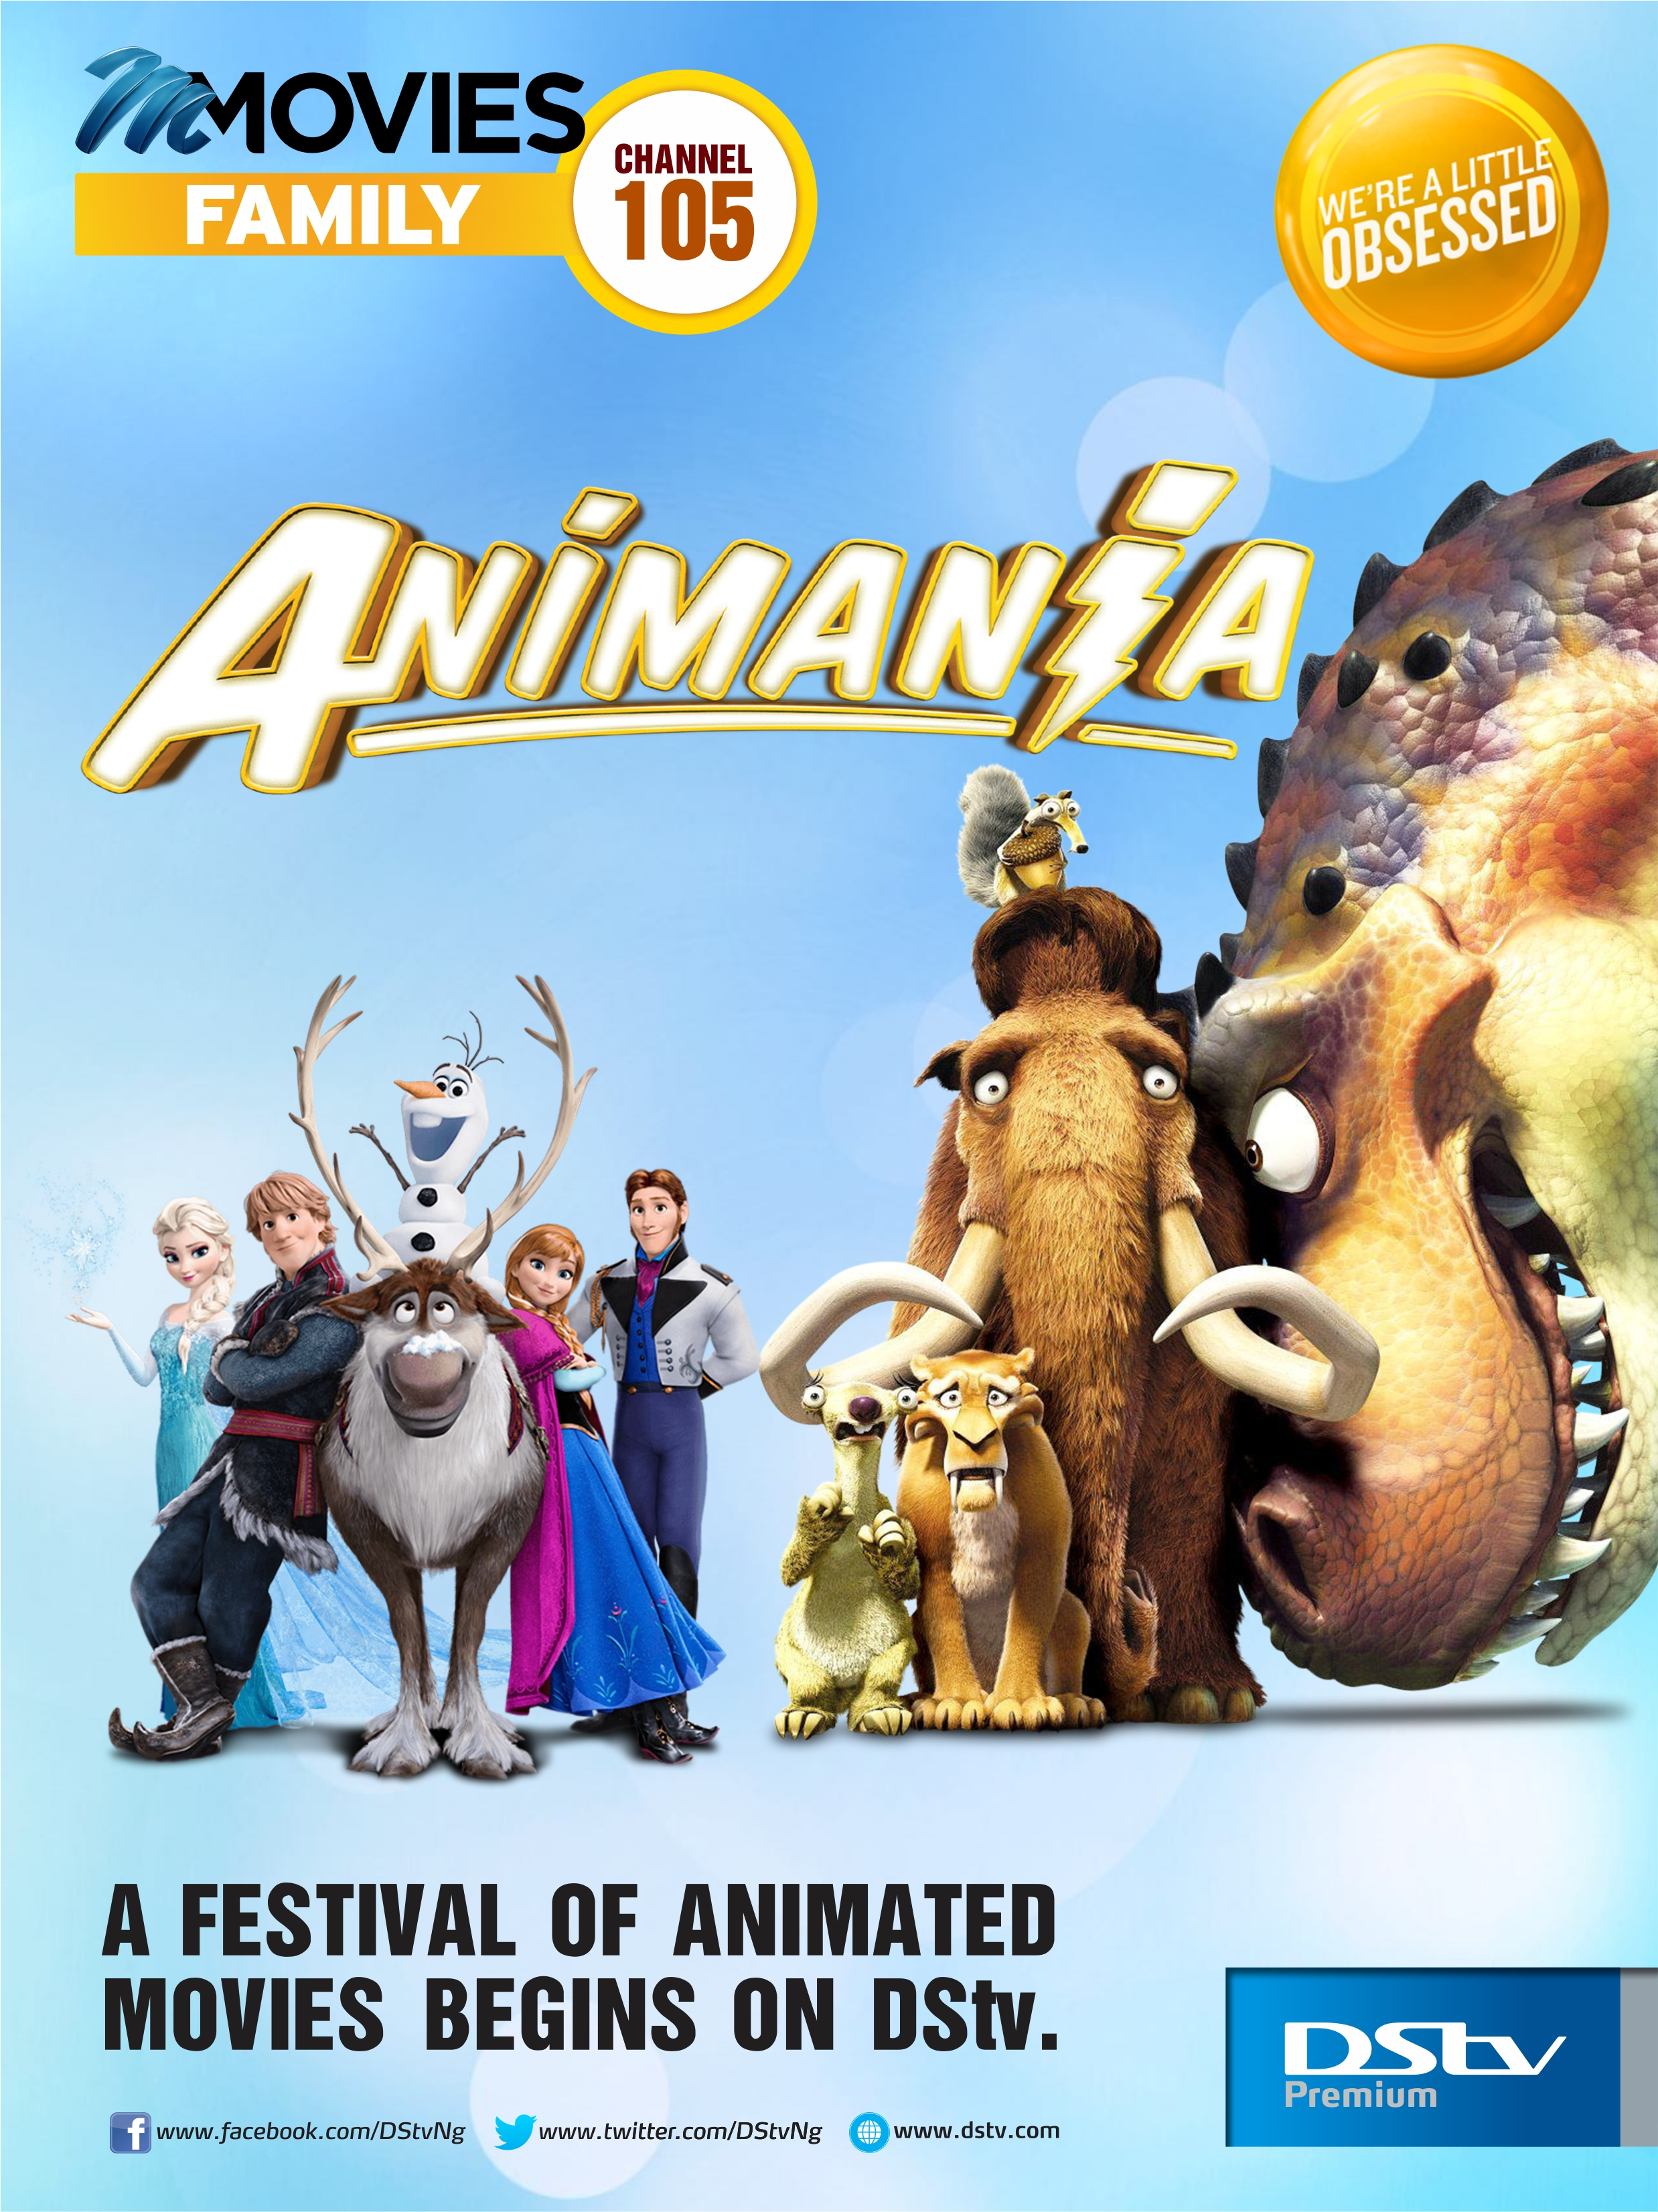 is animania safe